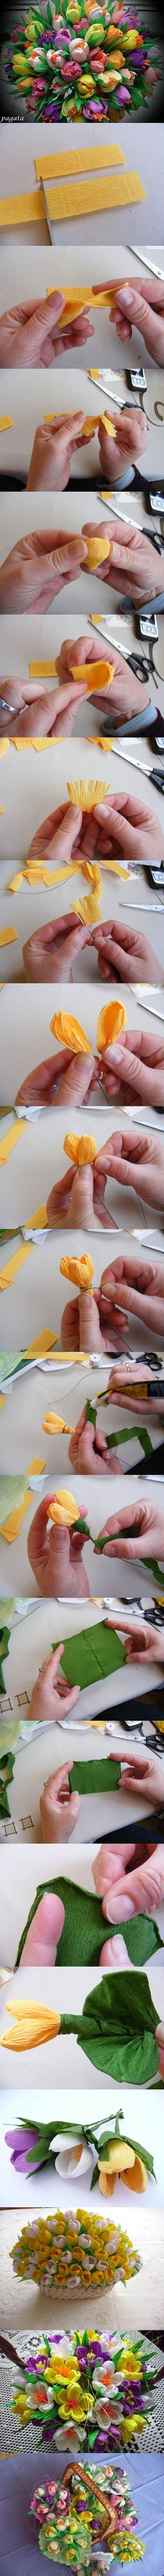 CREPE PAPER CROCUS DIY Bouquet of Crepe Paper Crocuses http://www.icreativeideas.com/diy-beautiful-bouquet-of-crepe-paper-crocuses/